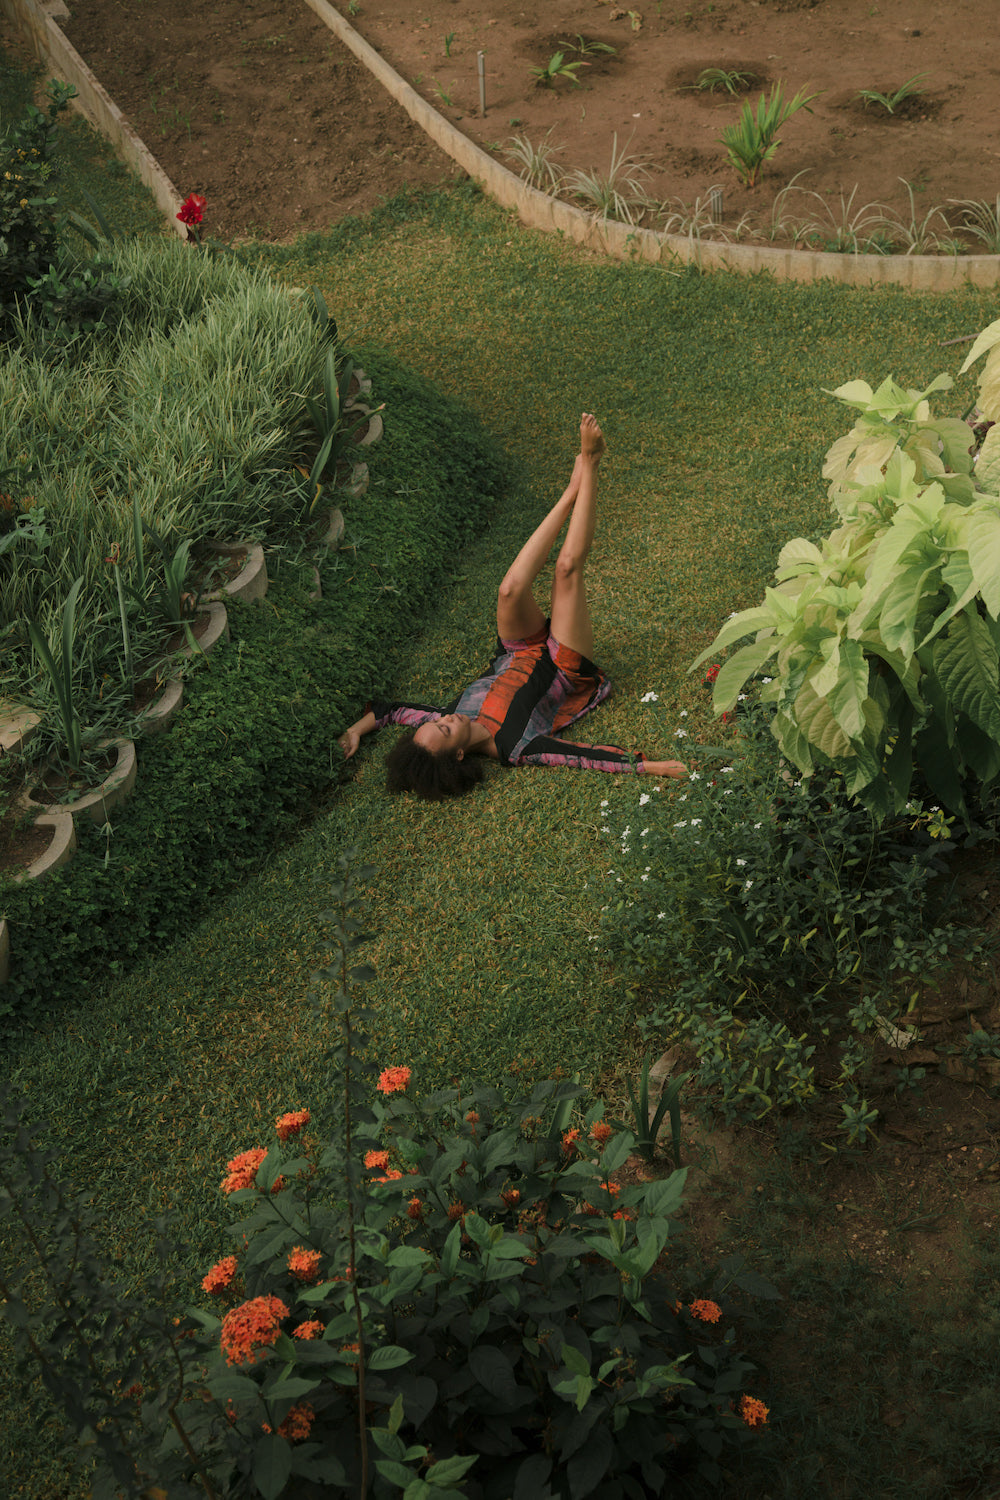 Efua Sutherland laying in the grass